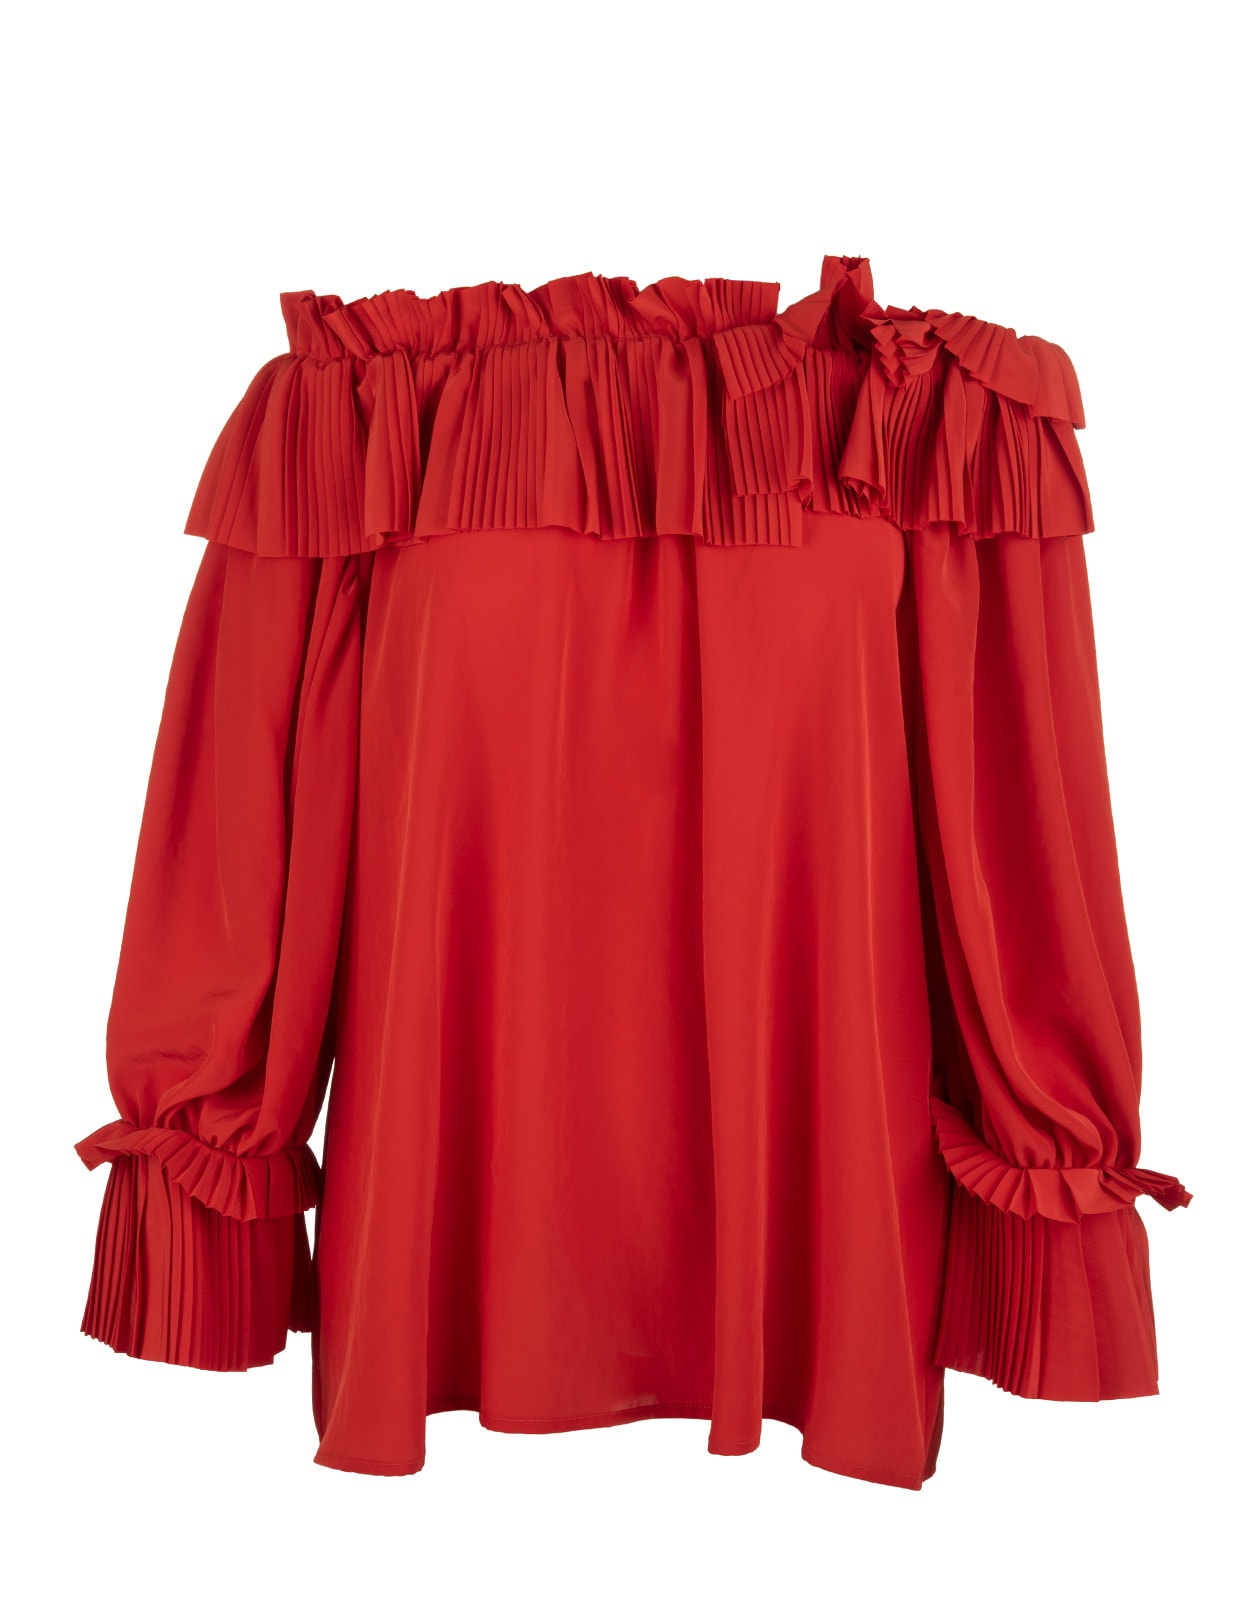 A.R.O.H. red blouse with uncovered shoulders, pleated ruffle neckline and long soft sleeves with cuffs embellished with pleated ruffles. Soft fit. Composition: 100% Polyester